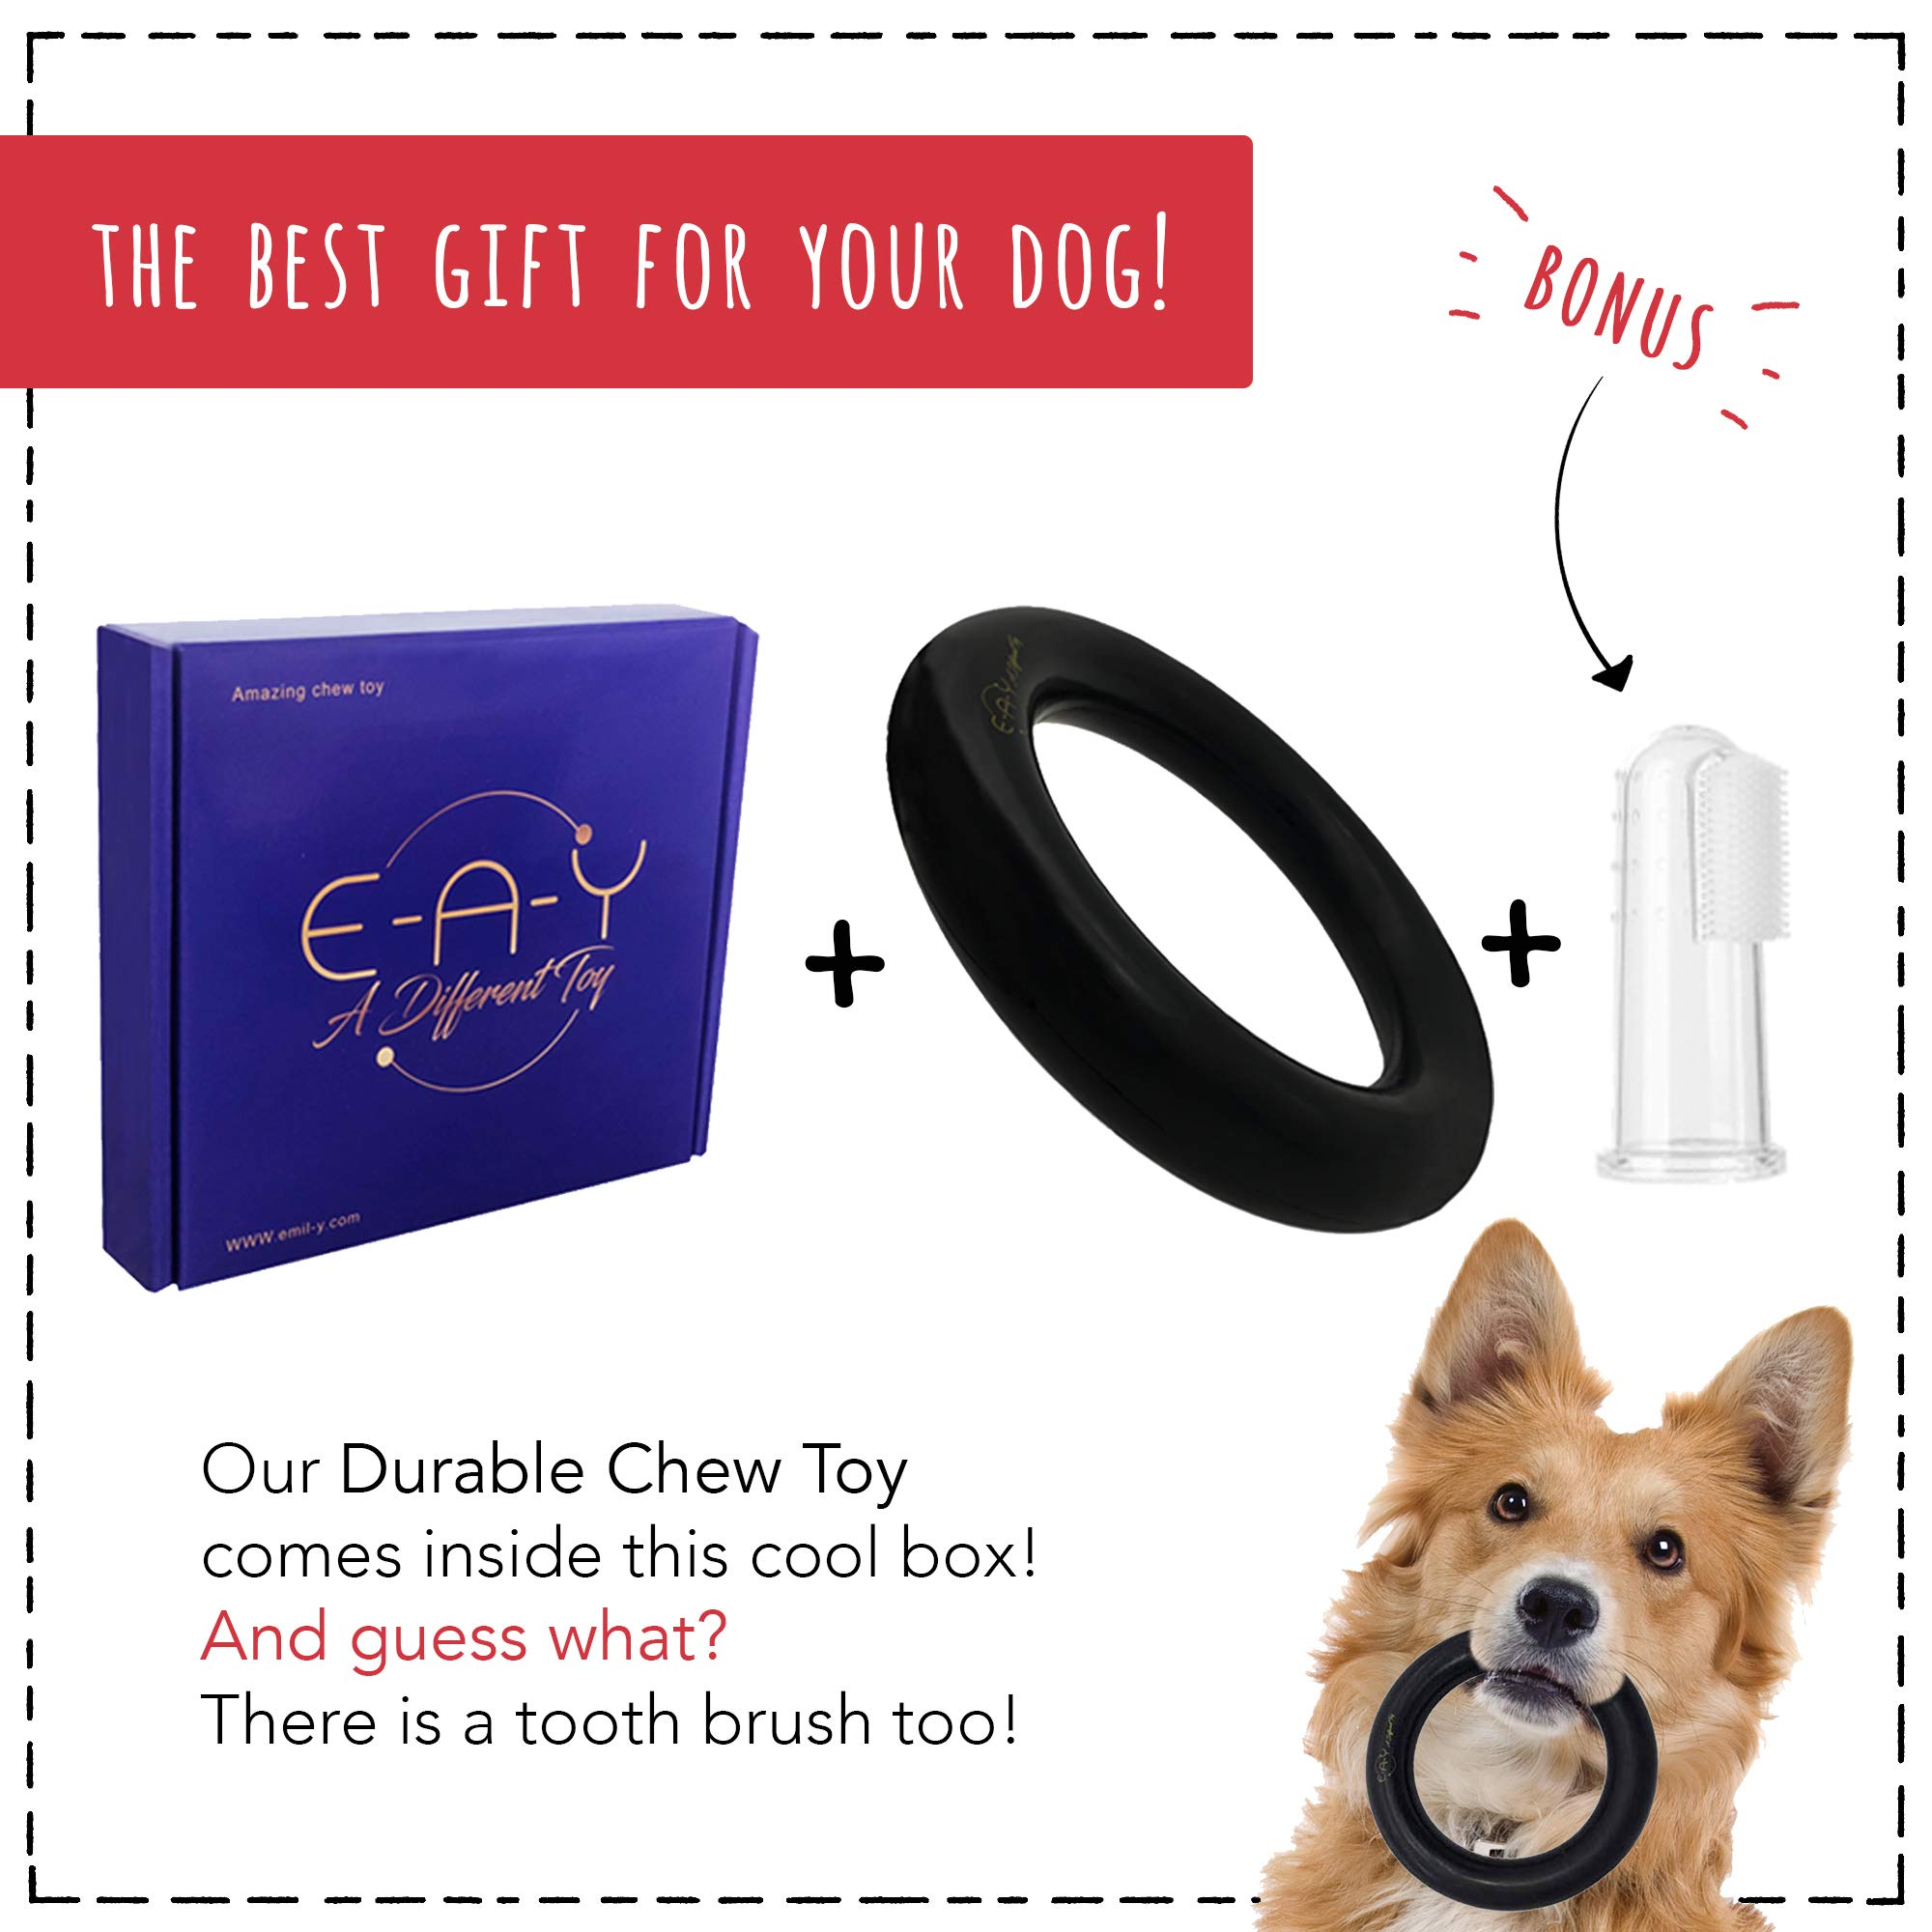 E-A-Y Dog Toys for Aggressive Chewers - Durable Chew Toy - Rubber Chew Toy for Dogs & Puppies & Tough Strong Durable Natural Rubber - 100% Safe & Non-Toxic & Stylish Gift Box !!!